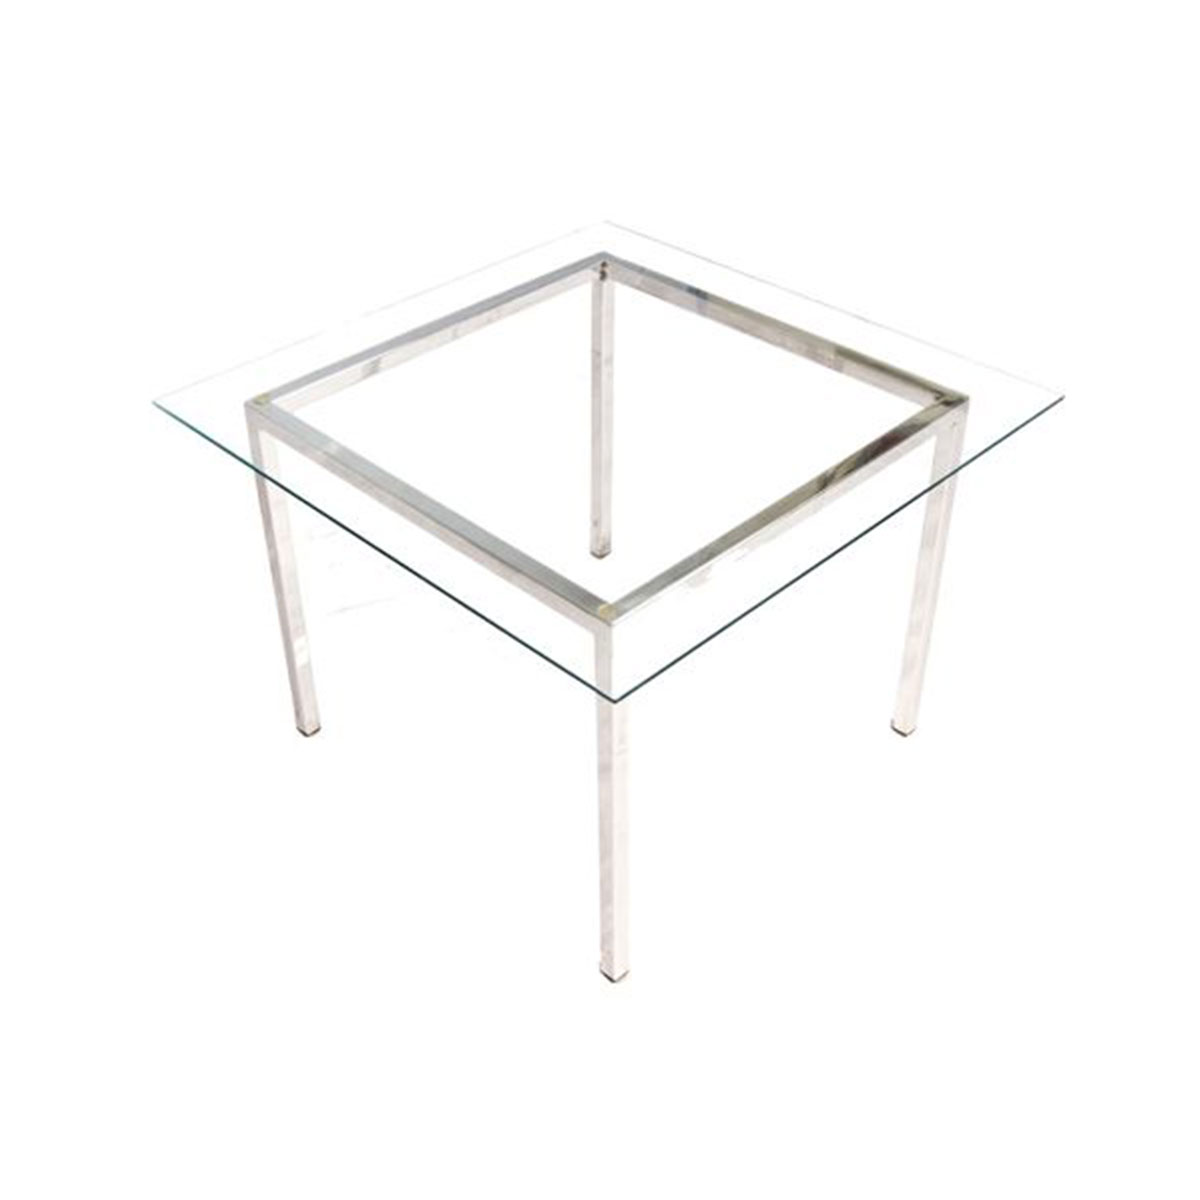 1970's Designer Glass & Chrome Square Coffee Table Attributed to Milo Baughman